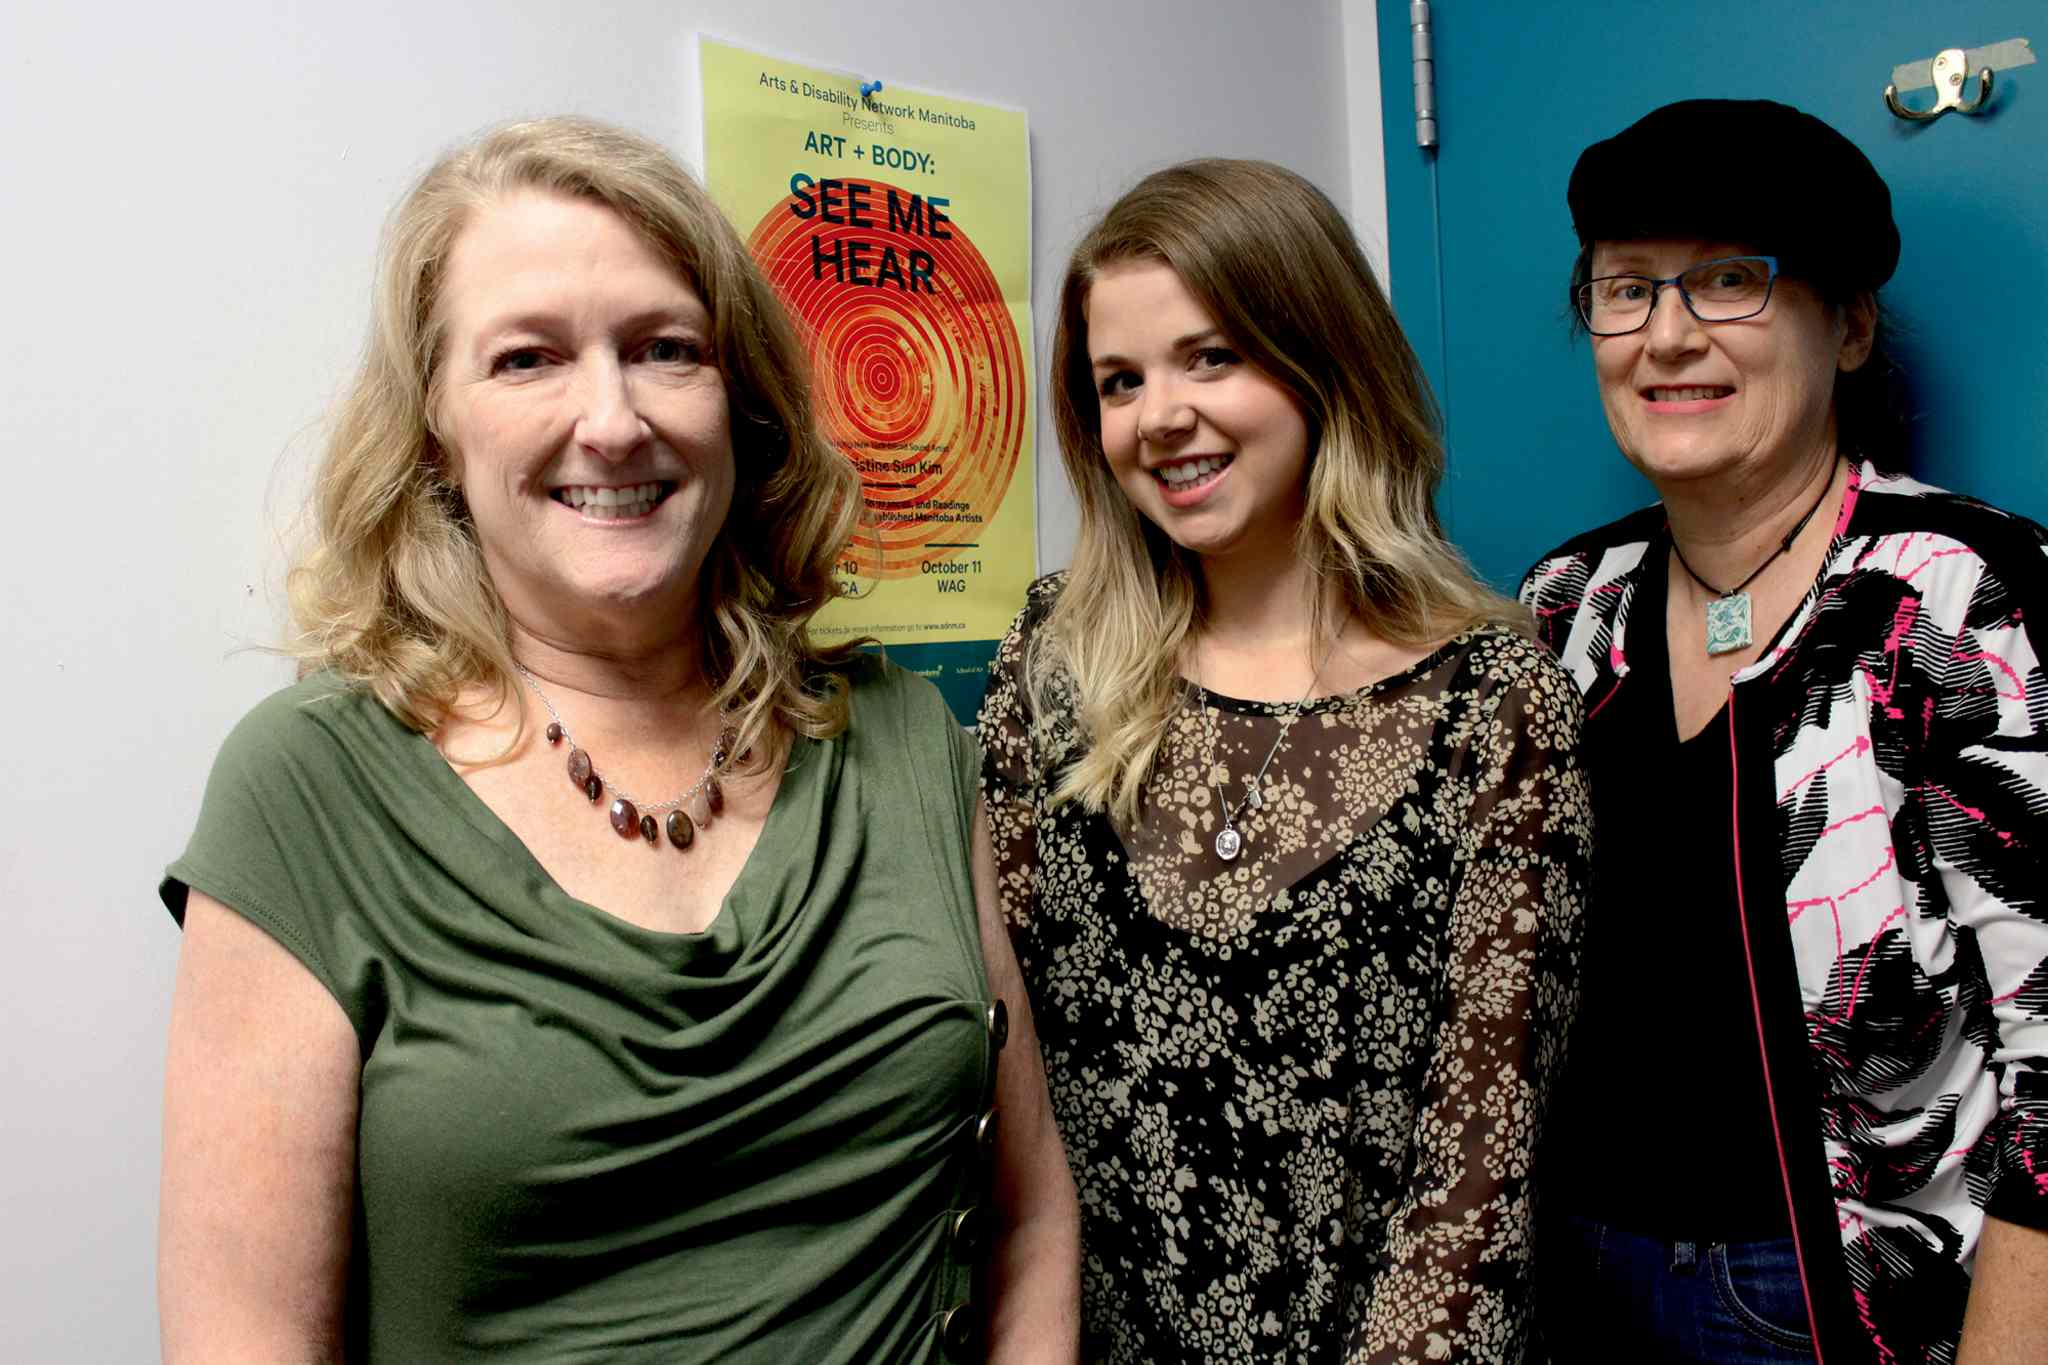 Cara Mason (middle) and Alice Crawford (right) are artists featured in this year's Art + Body festival. Susan Lamberd (left) says these artists have unique perspectives on life and art because of their disabilities.